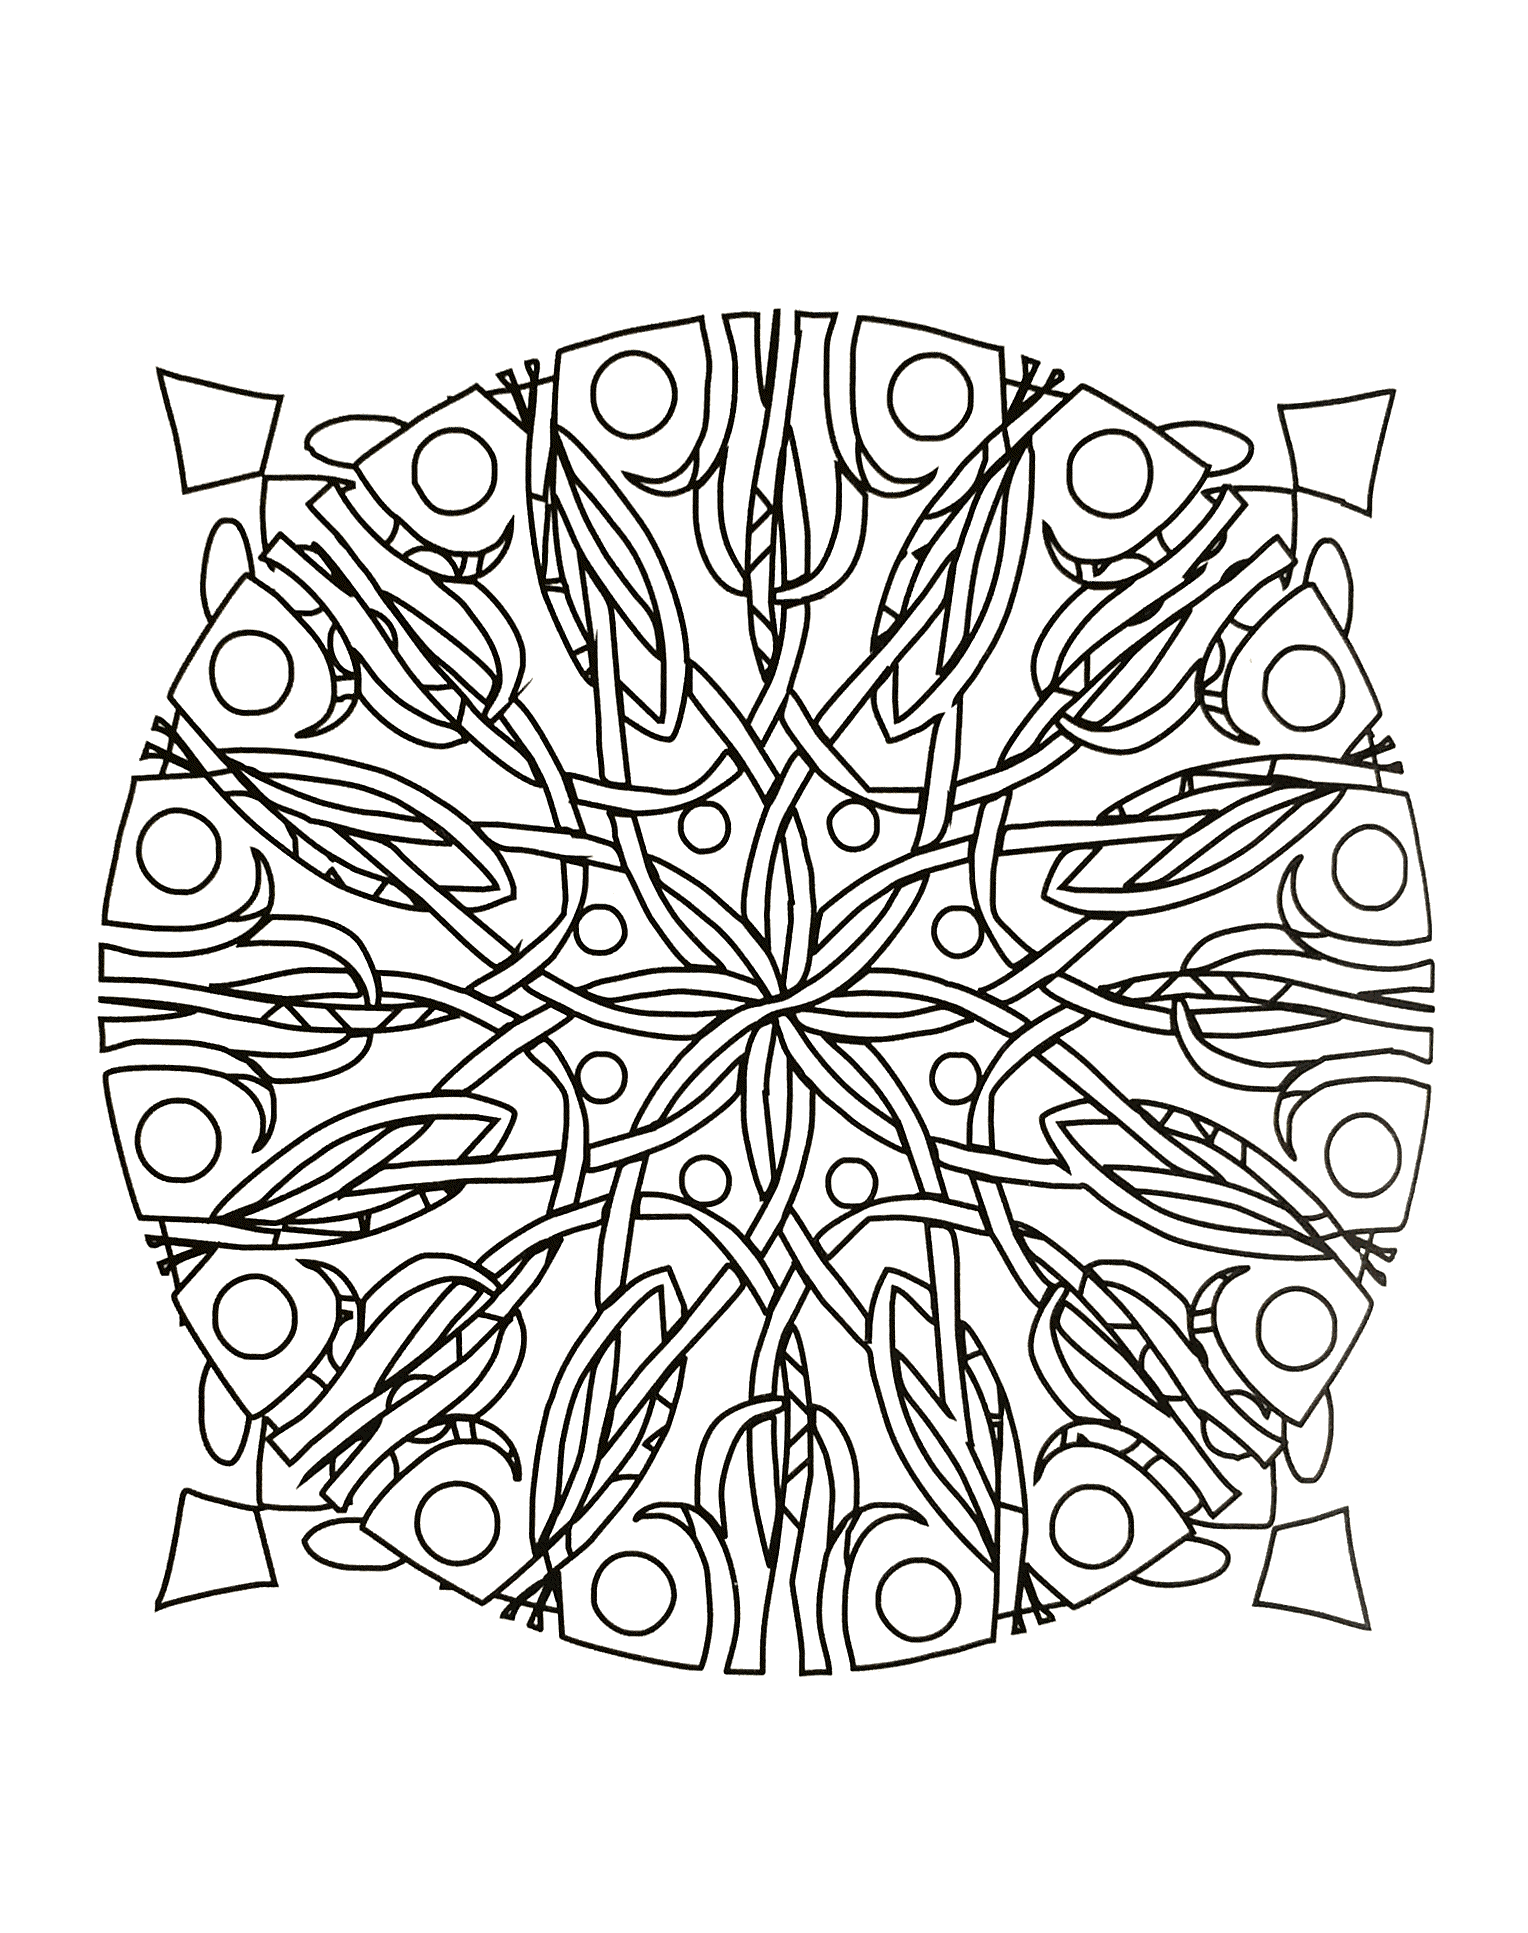 Mandala to download floral abstraction